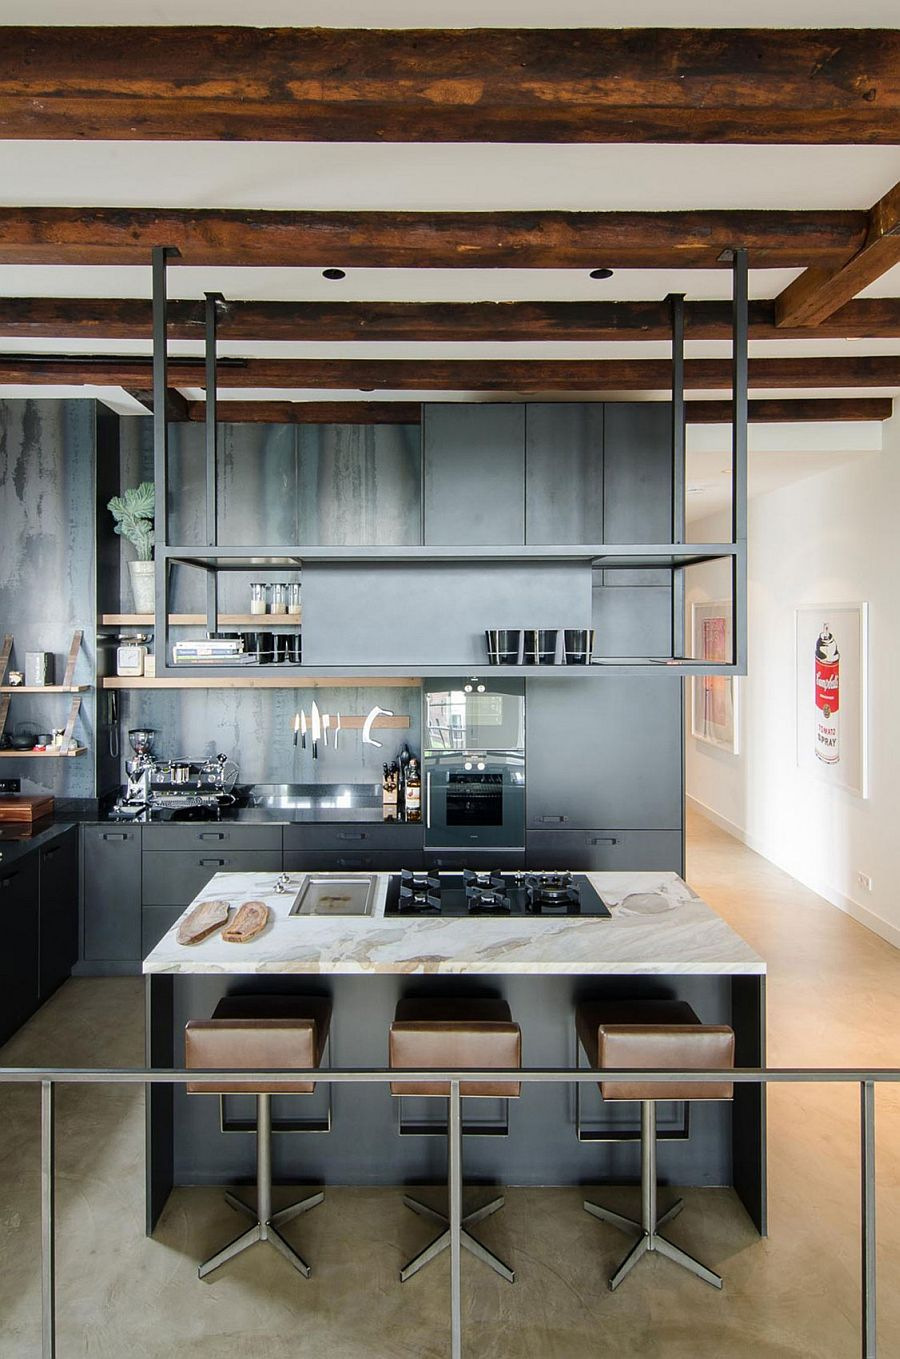 Industrial modern kitchen with exposed wooden beams and gray cabinets